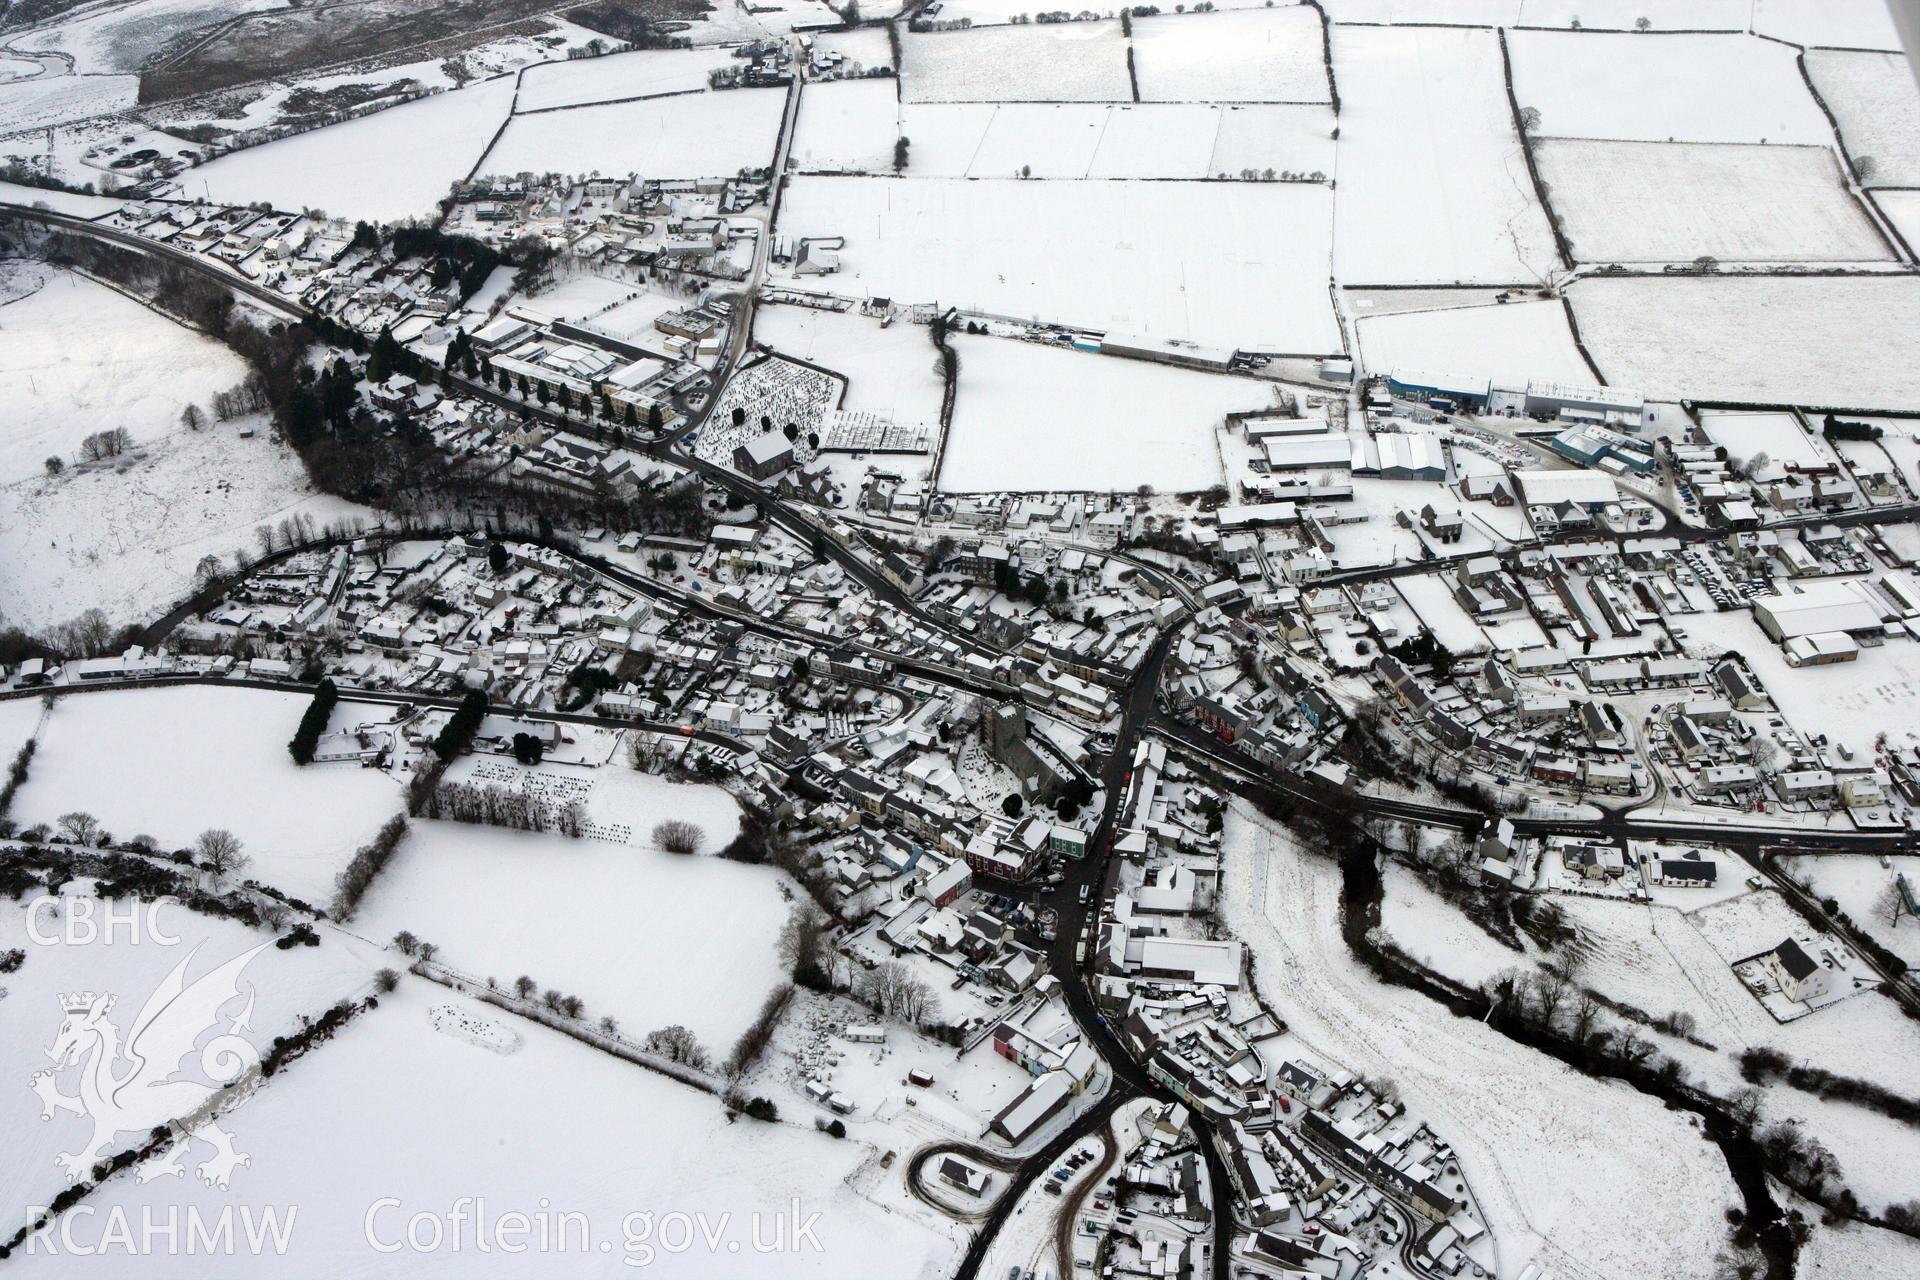 RCAHMW colour oblique aerial photograph of Tregaron under snow, by Toby Driver, 02/12/2010.